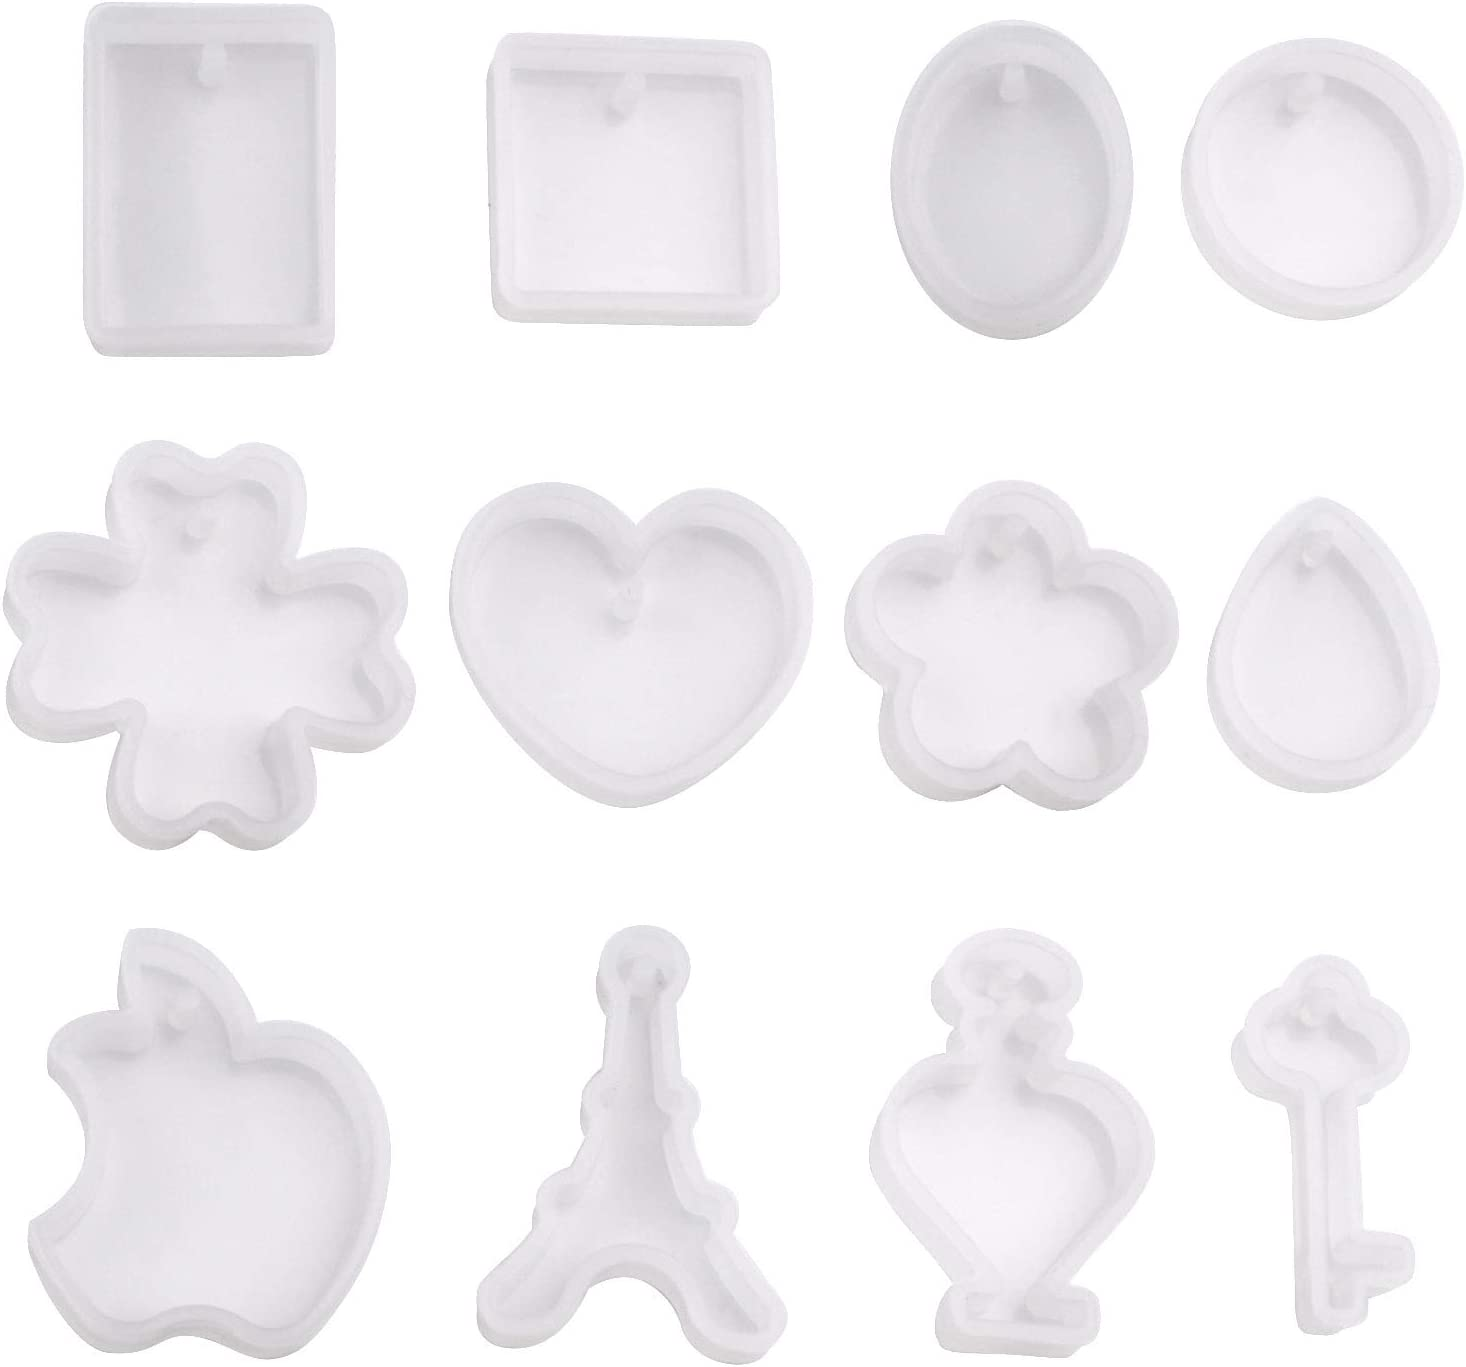 Resin Molds for Jewelry,12 Pieces Pendant Moulds with Hanging Hole Silicone Craft Making Moulds Collection in Shape Heart Drop Clover,12 Styles